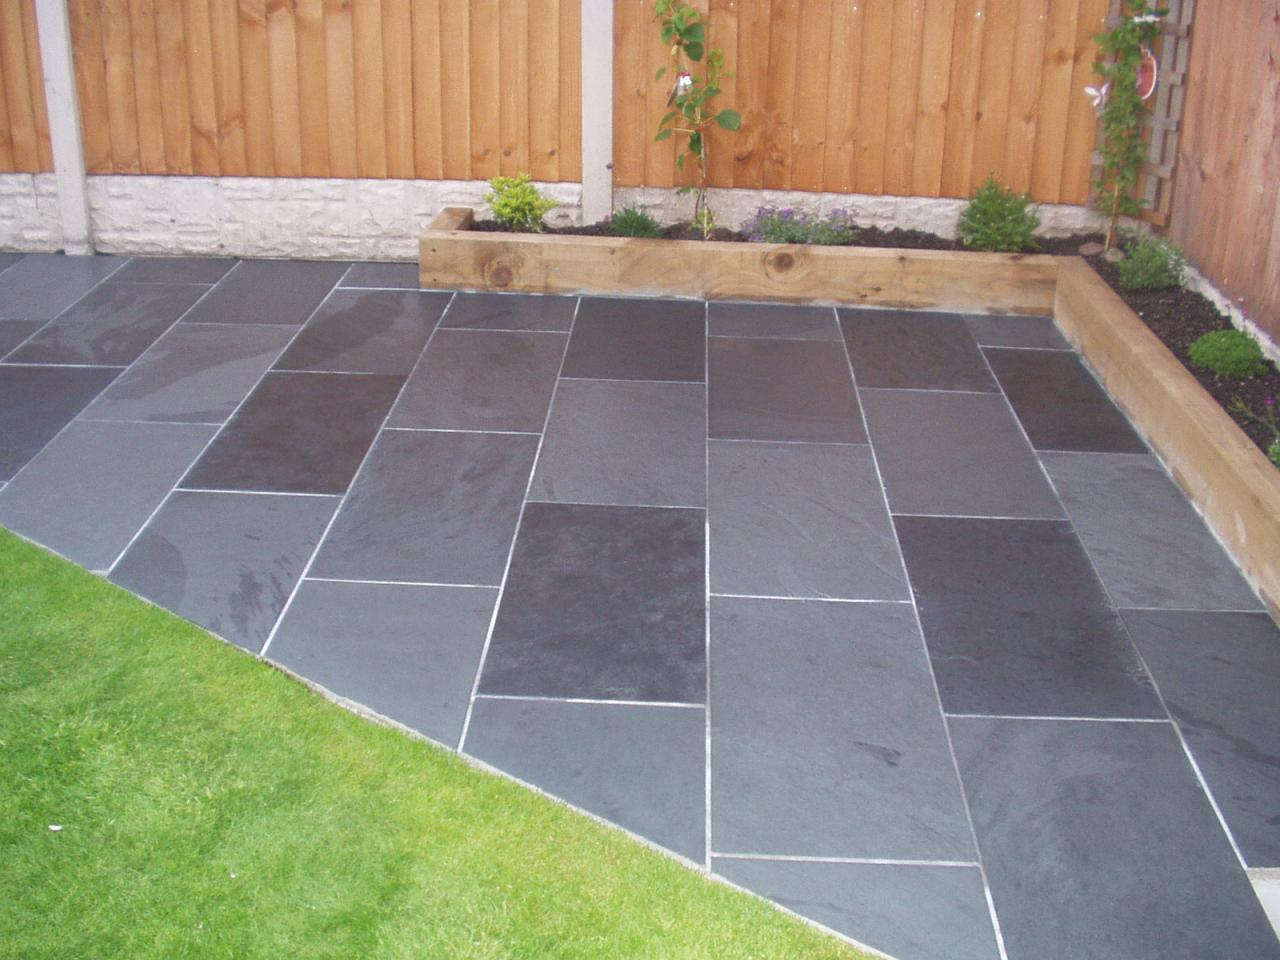 details about slate paving garden patio tiles not slabs